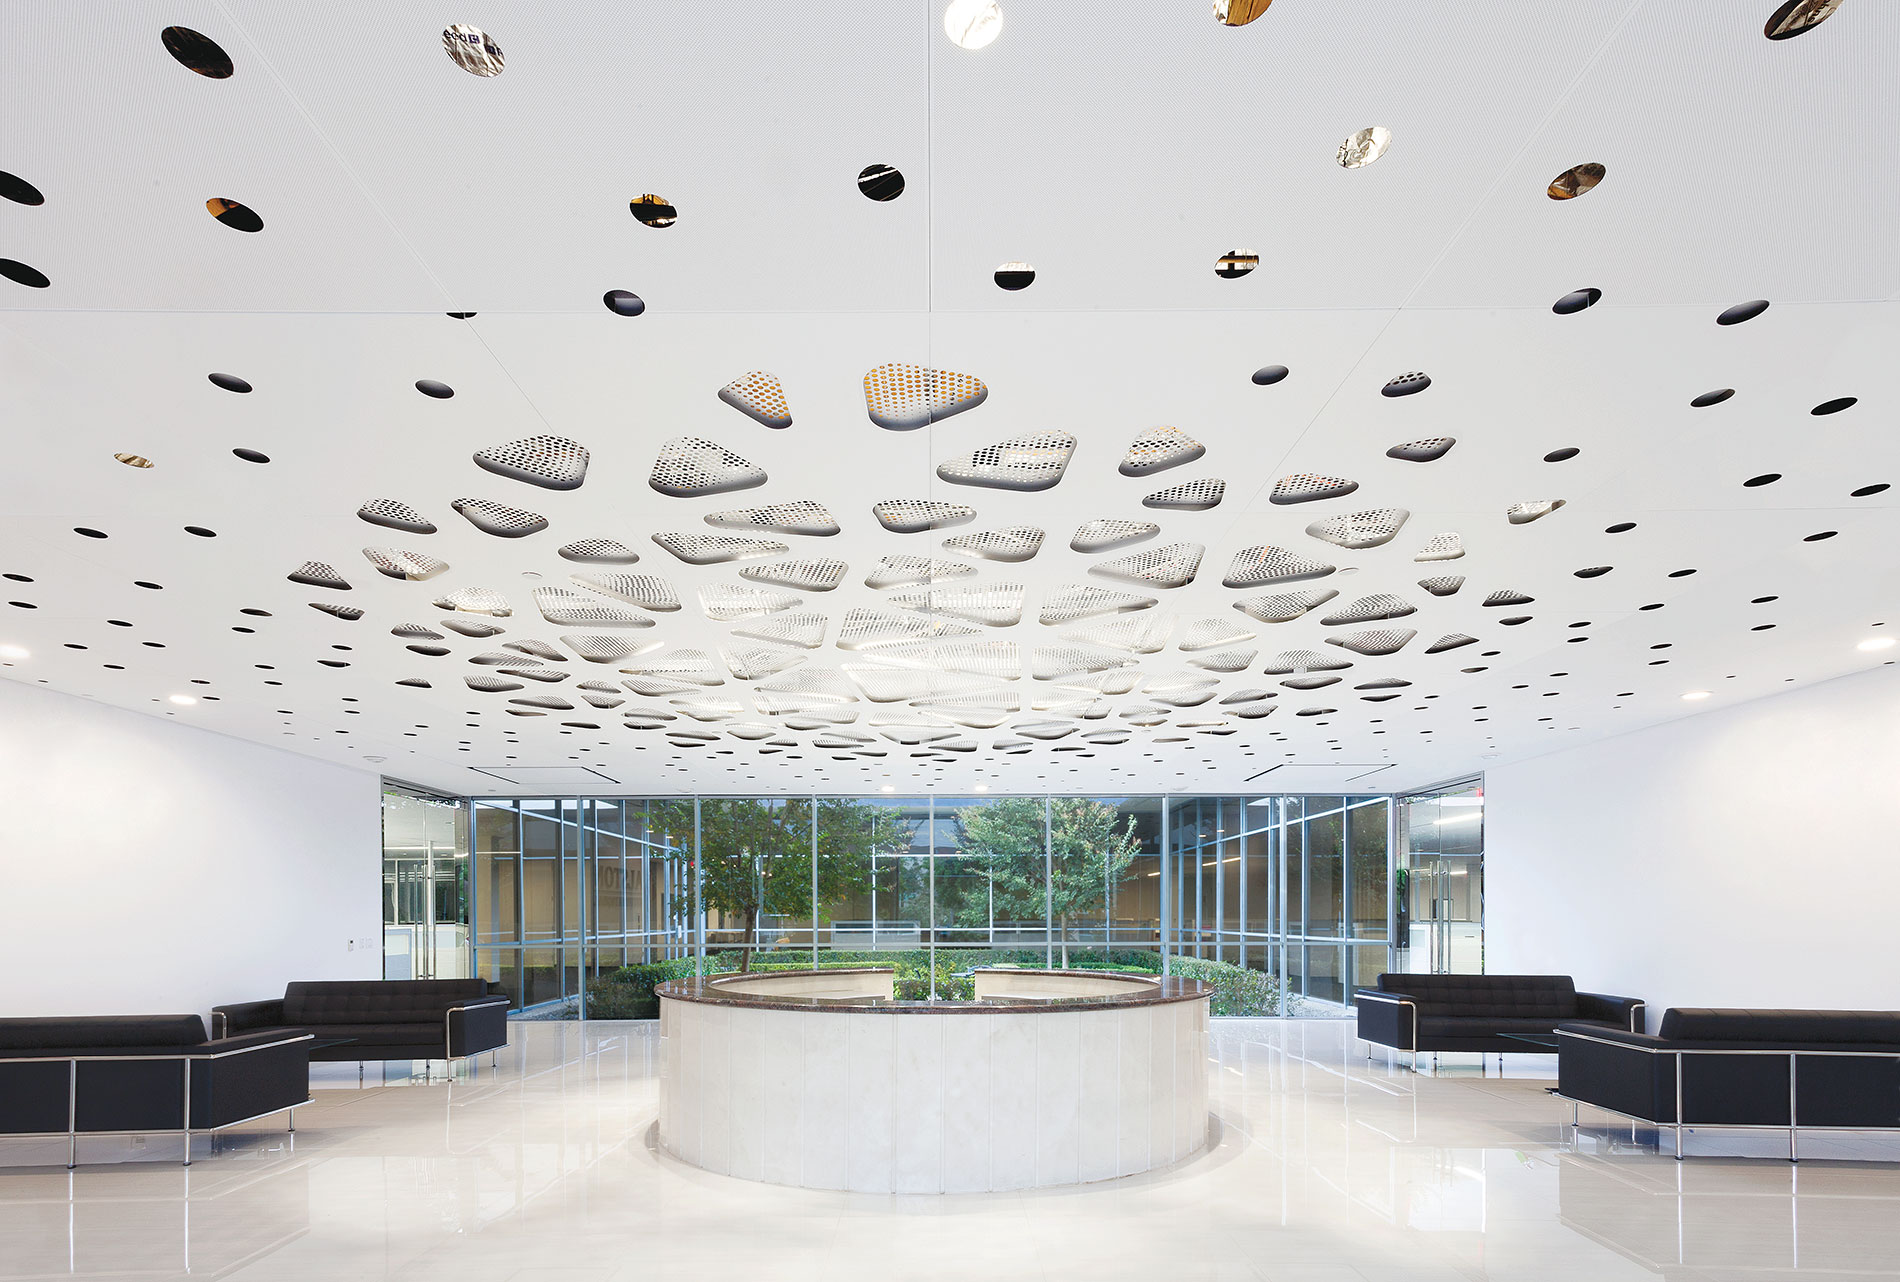 USG's Parti dual-layer acoustic ceiling has integrated lighting and a custom perforated design. Image Courtesy of USG Ceiling Plus